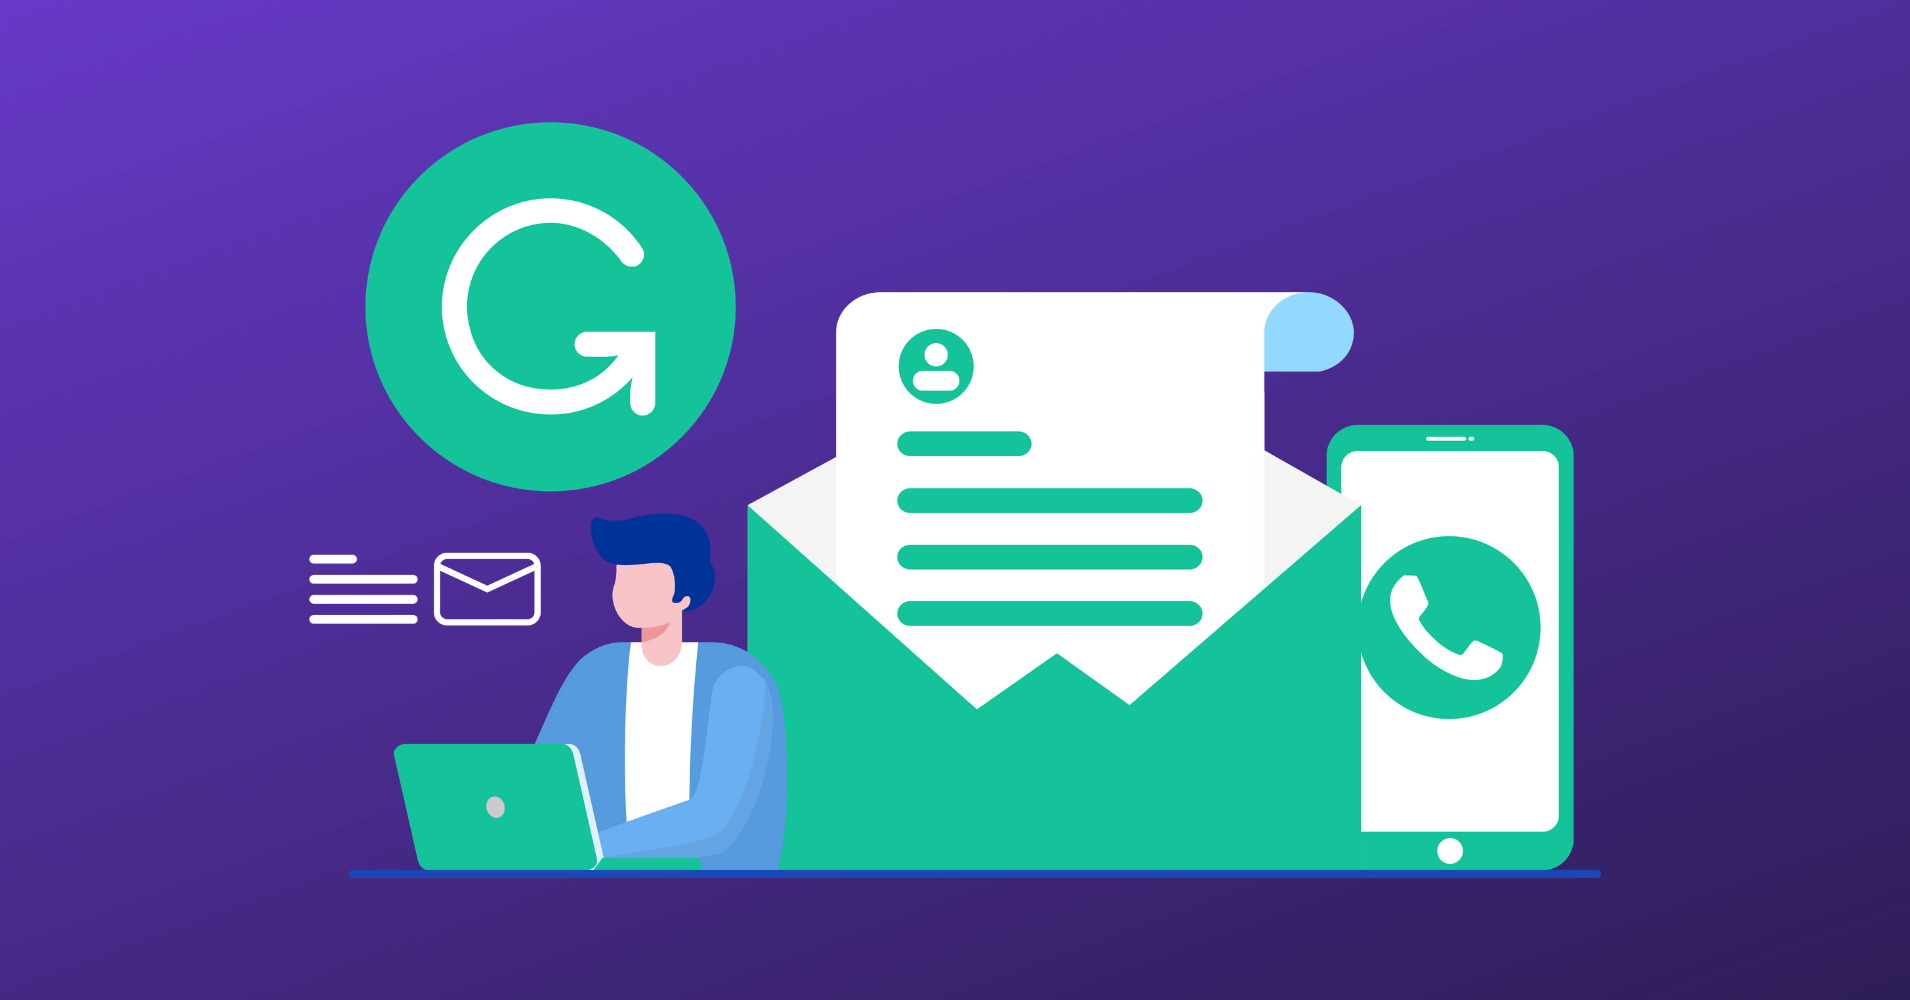 grammarly free user onboarding email, free user onboarding email sequence teardown, grammarly free user onboarding email sequence teardown